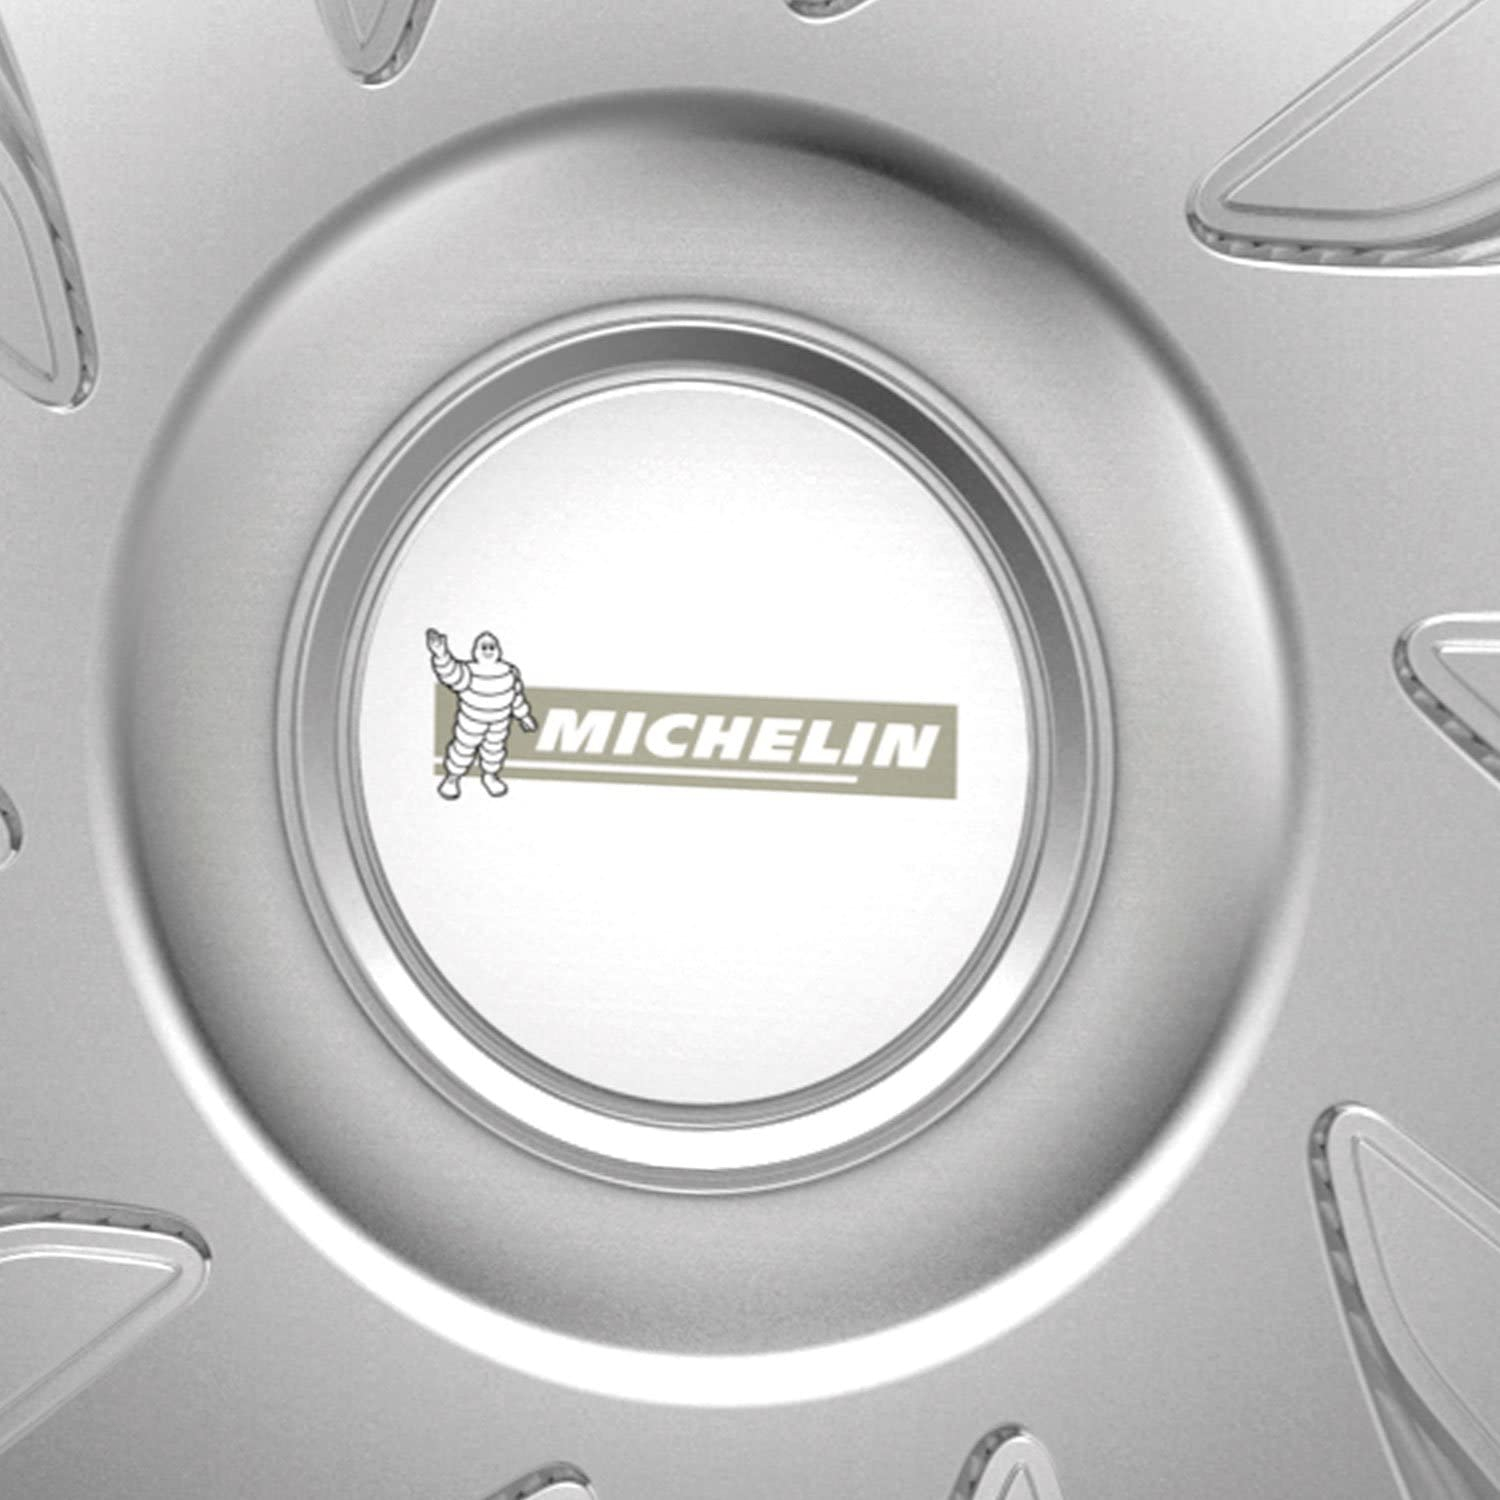 model 34 set of 4 silver 14 inches Michelin 92005 Wheel trim set 35.56 cm set of 4 with reflector system N.V.S.